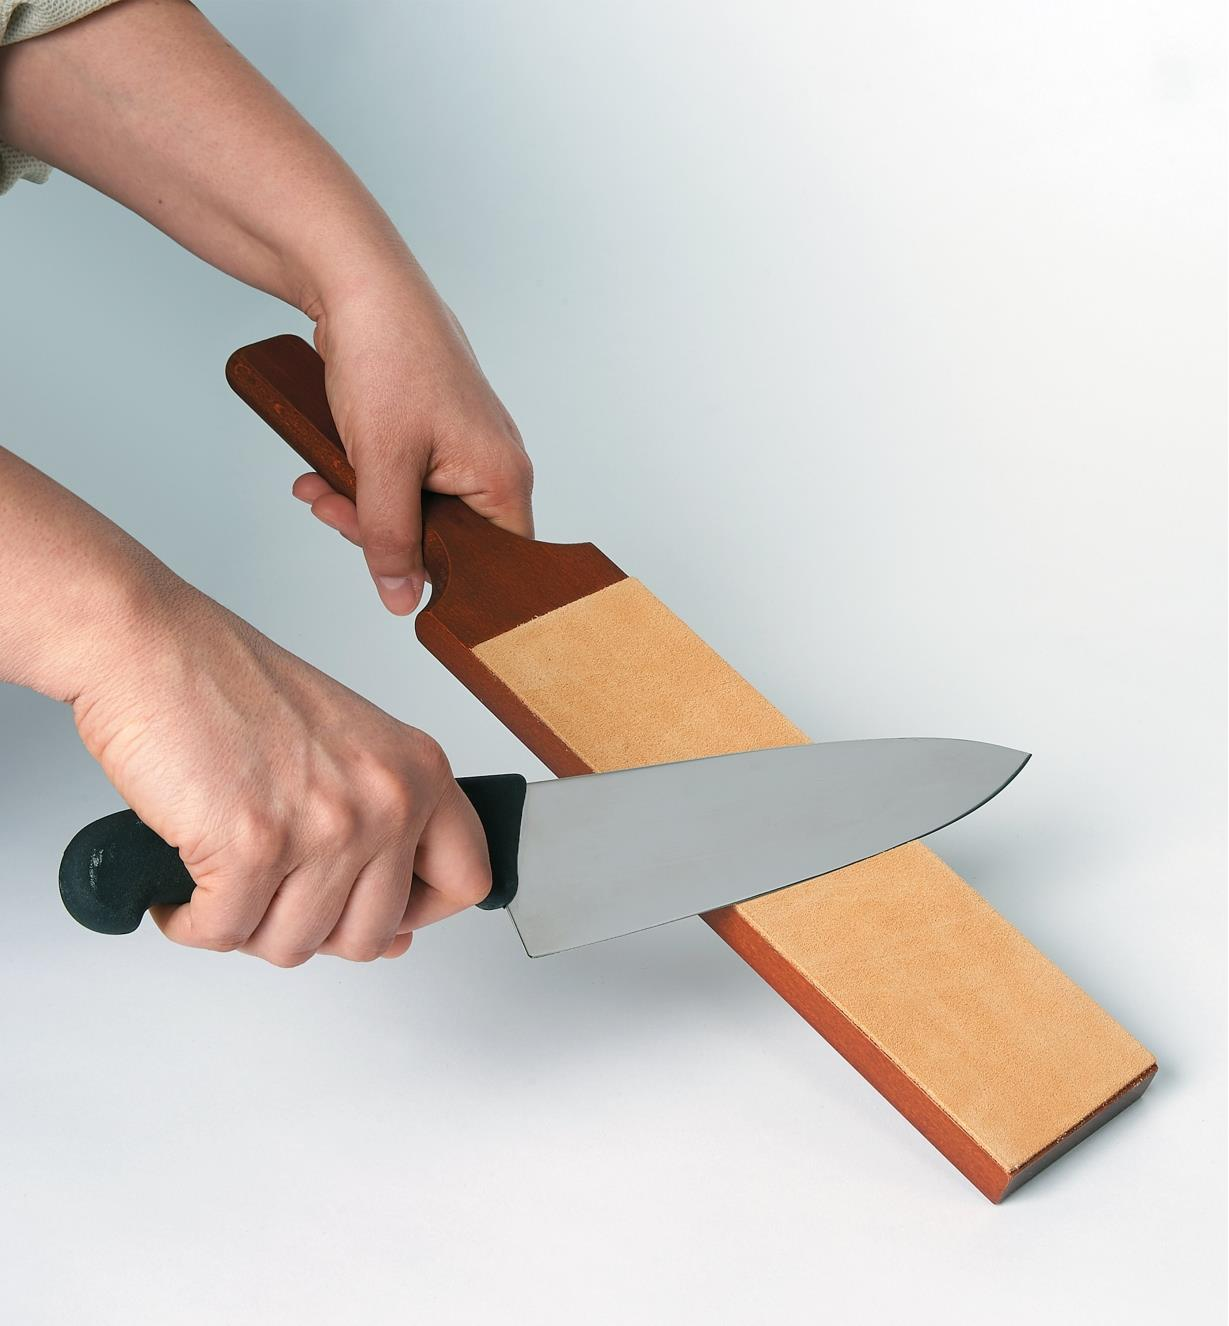 Sharpening a chef's knife on a Leather Strop